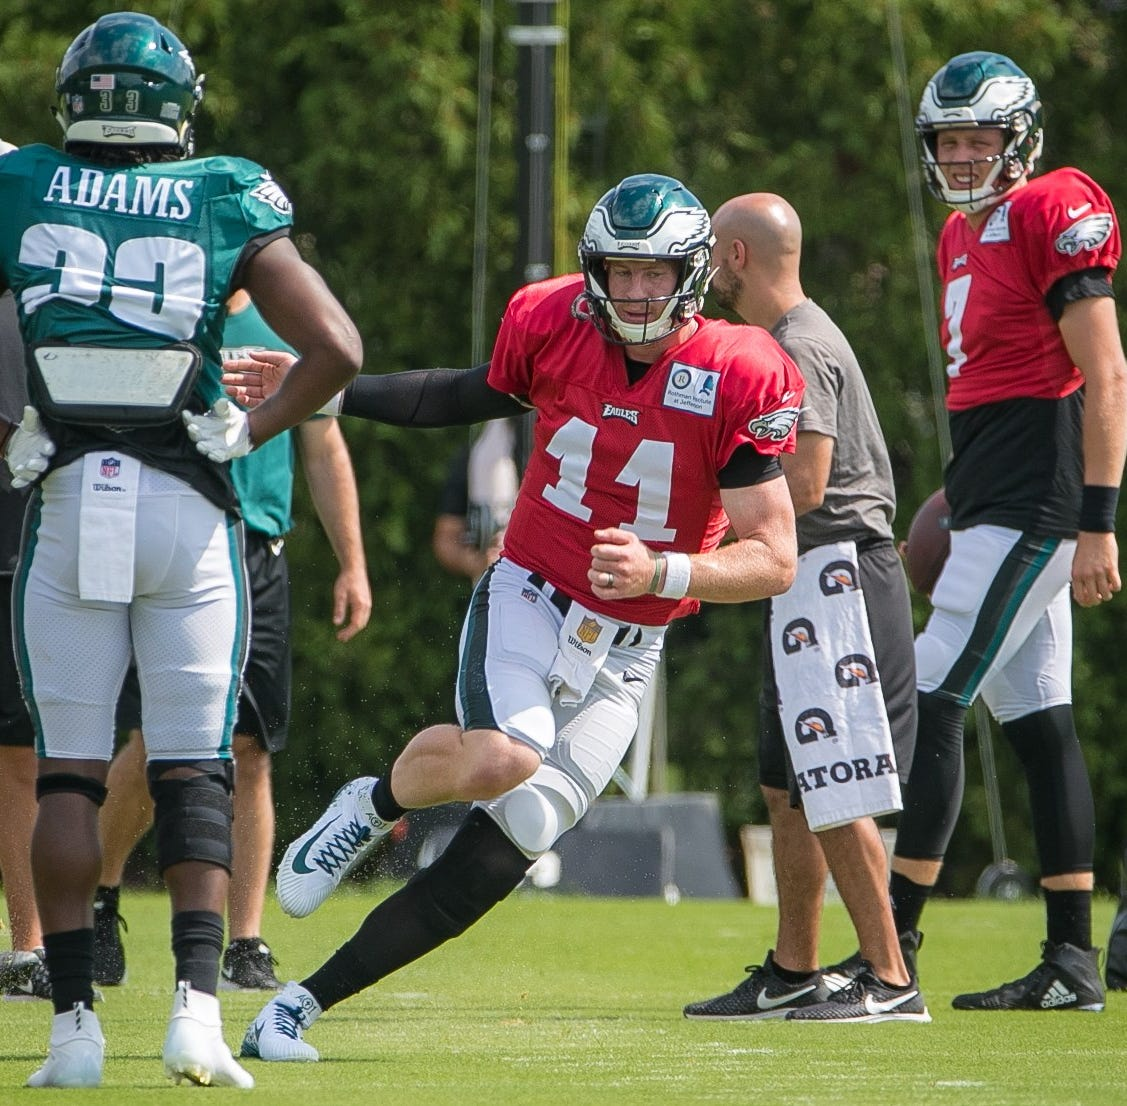 Eagles made right call in going slow with Carson Wentz's return, surgeons say